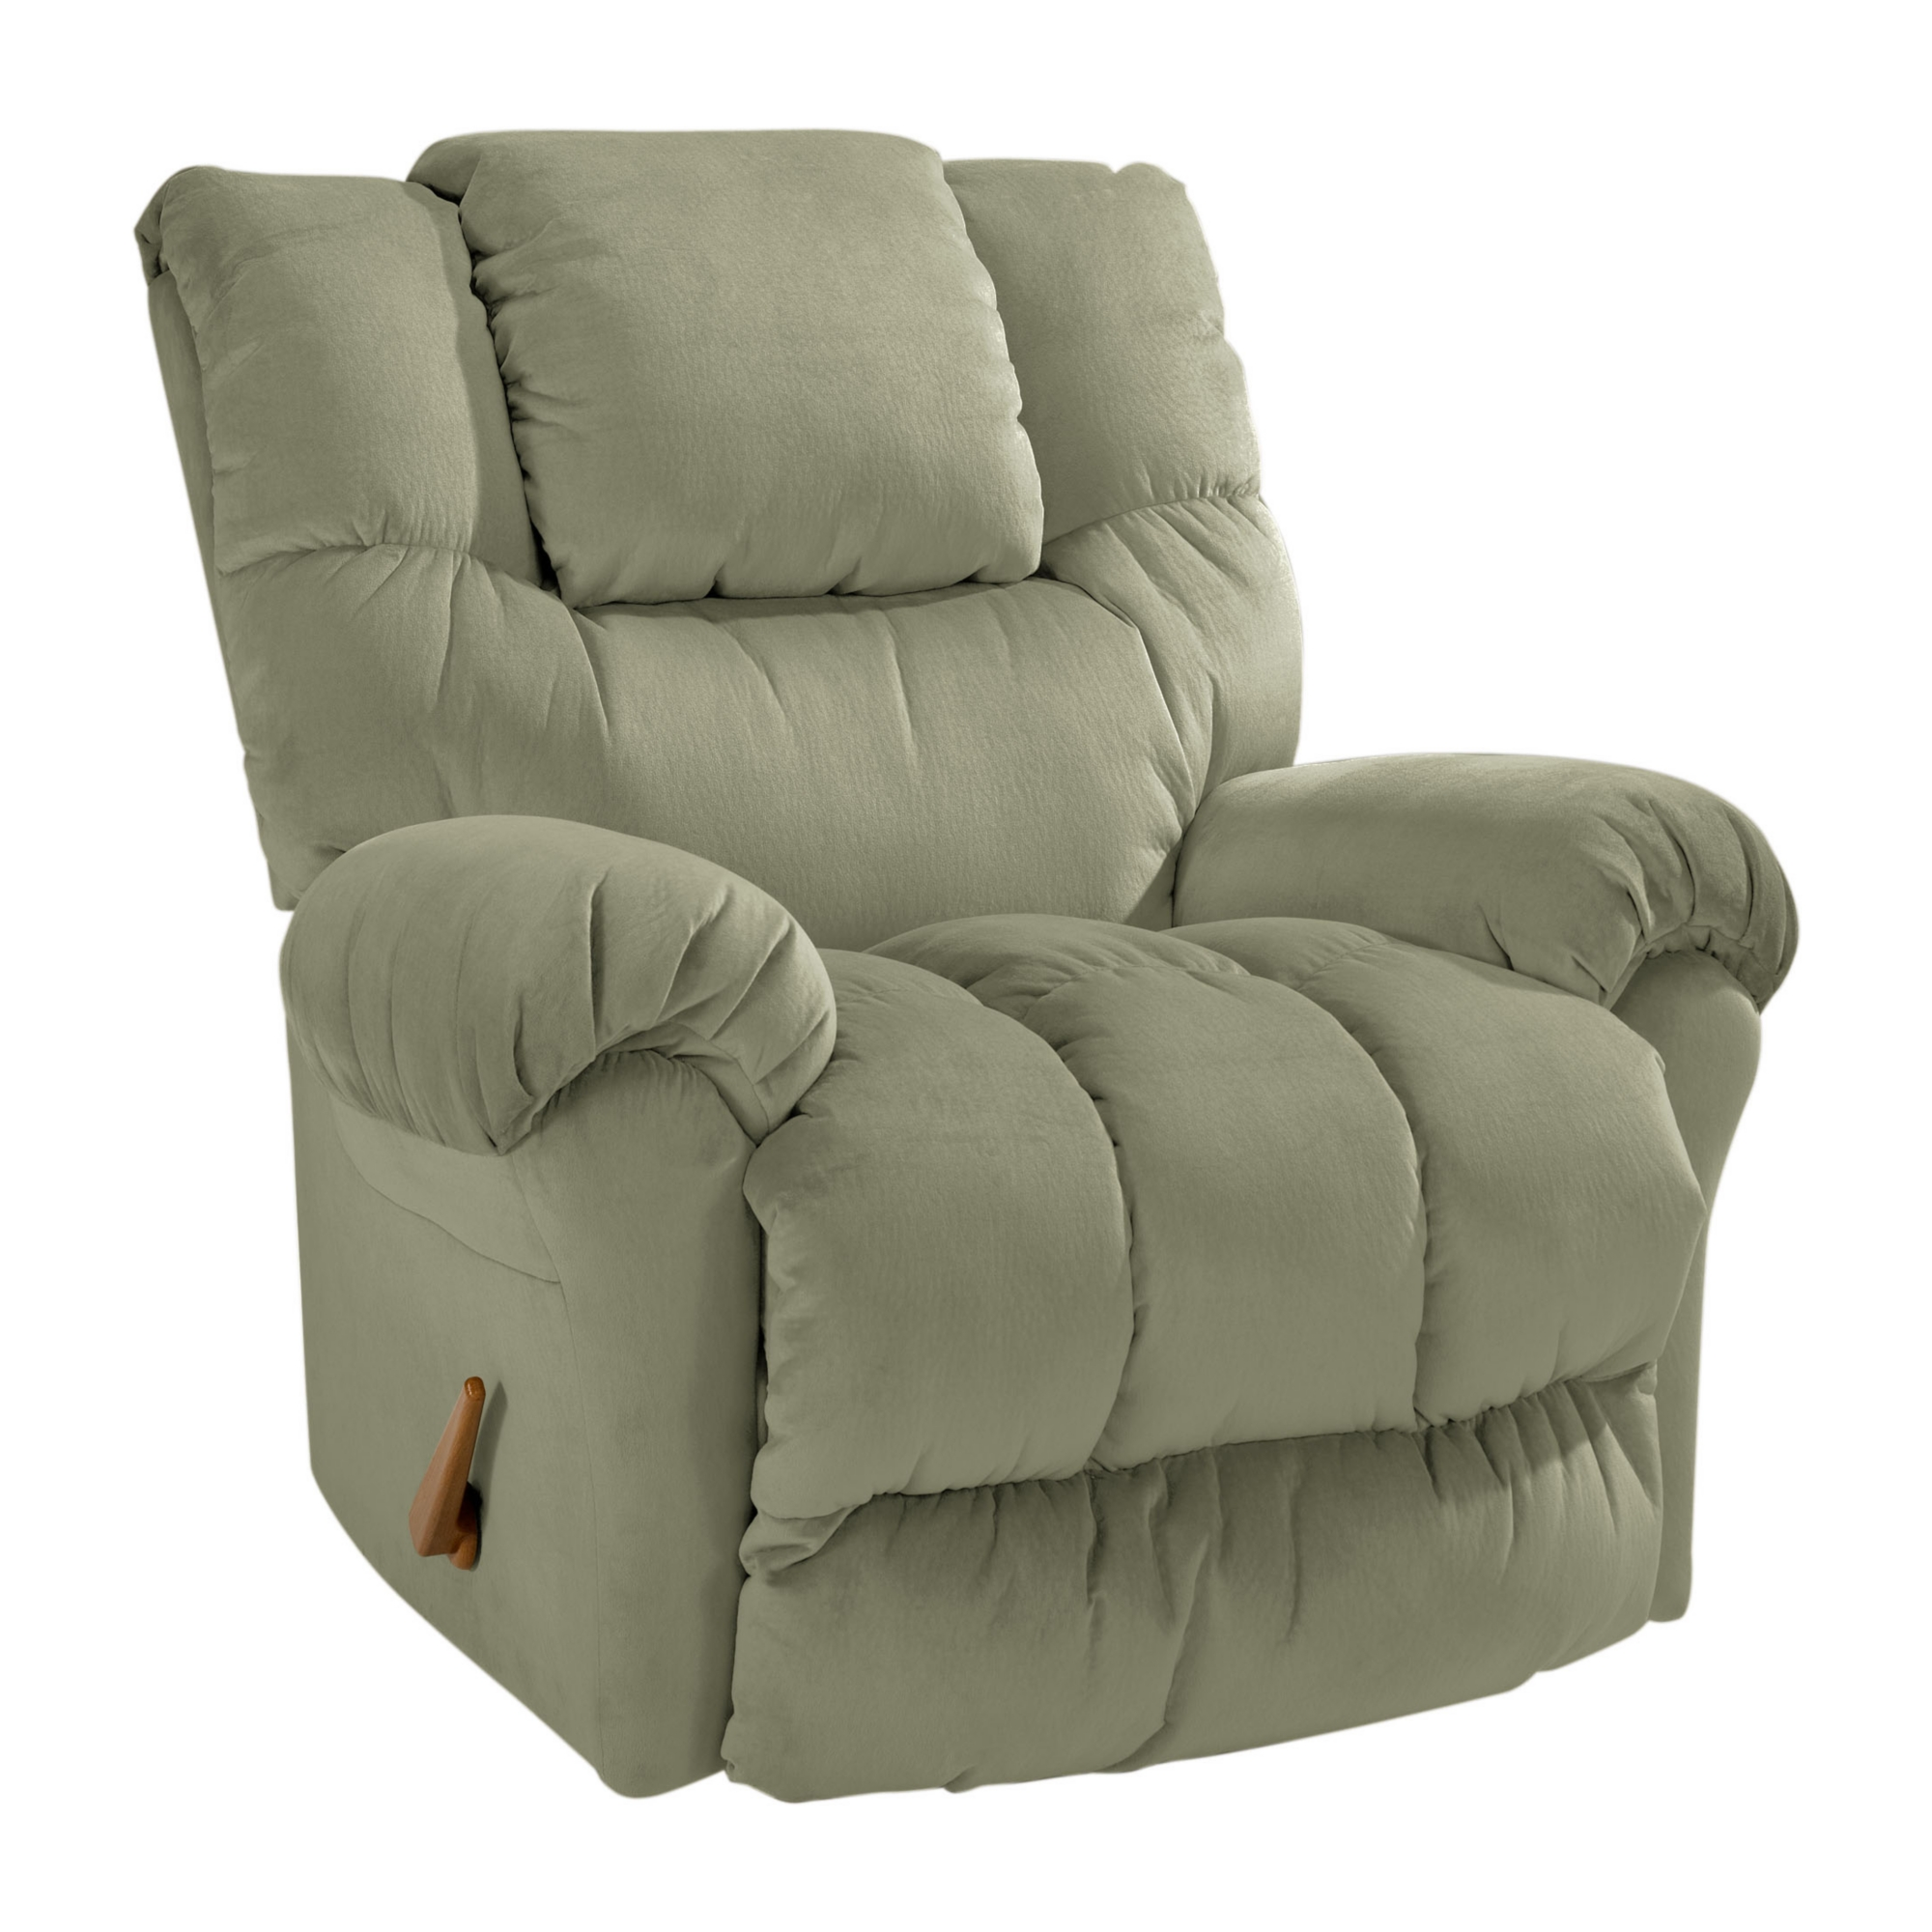 small recliners for bedroom.  Recliners Havertys